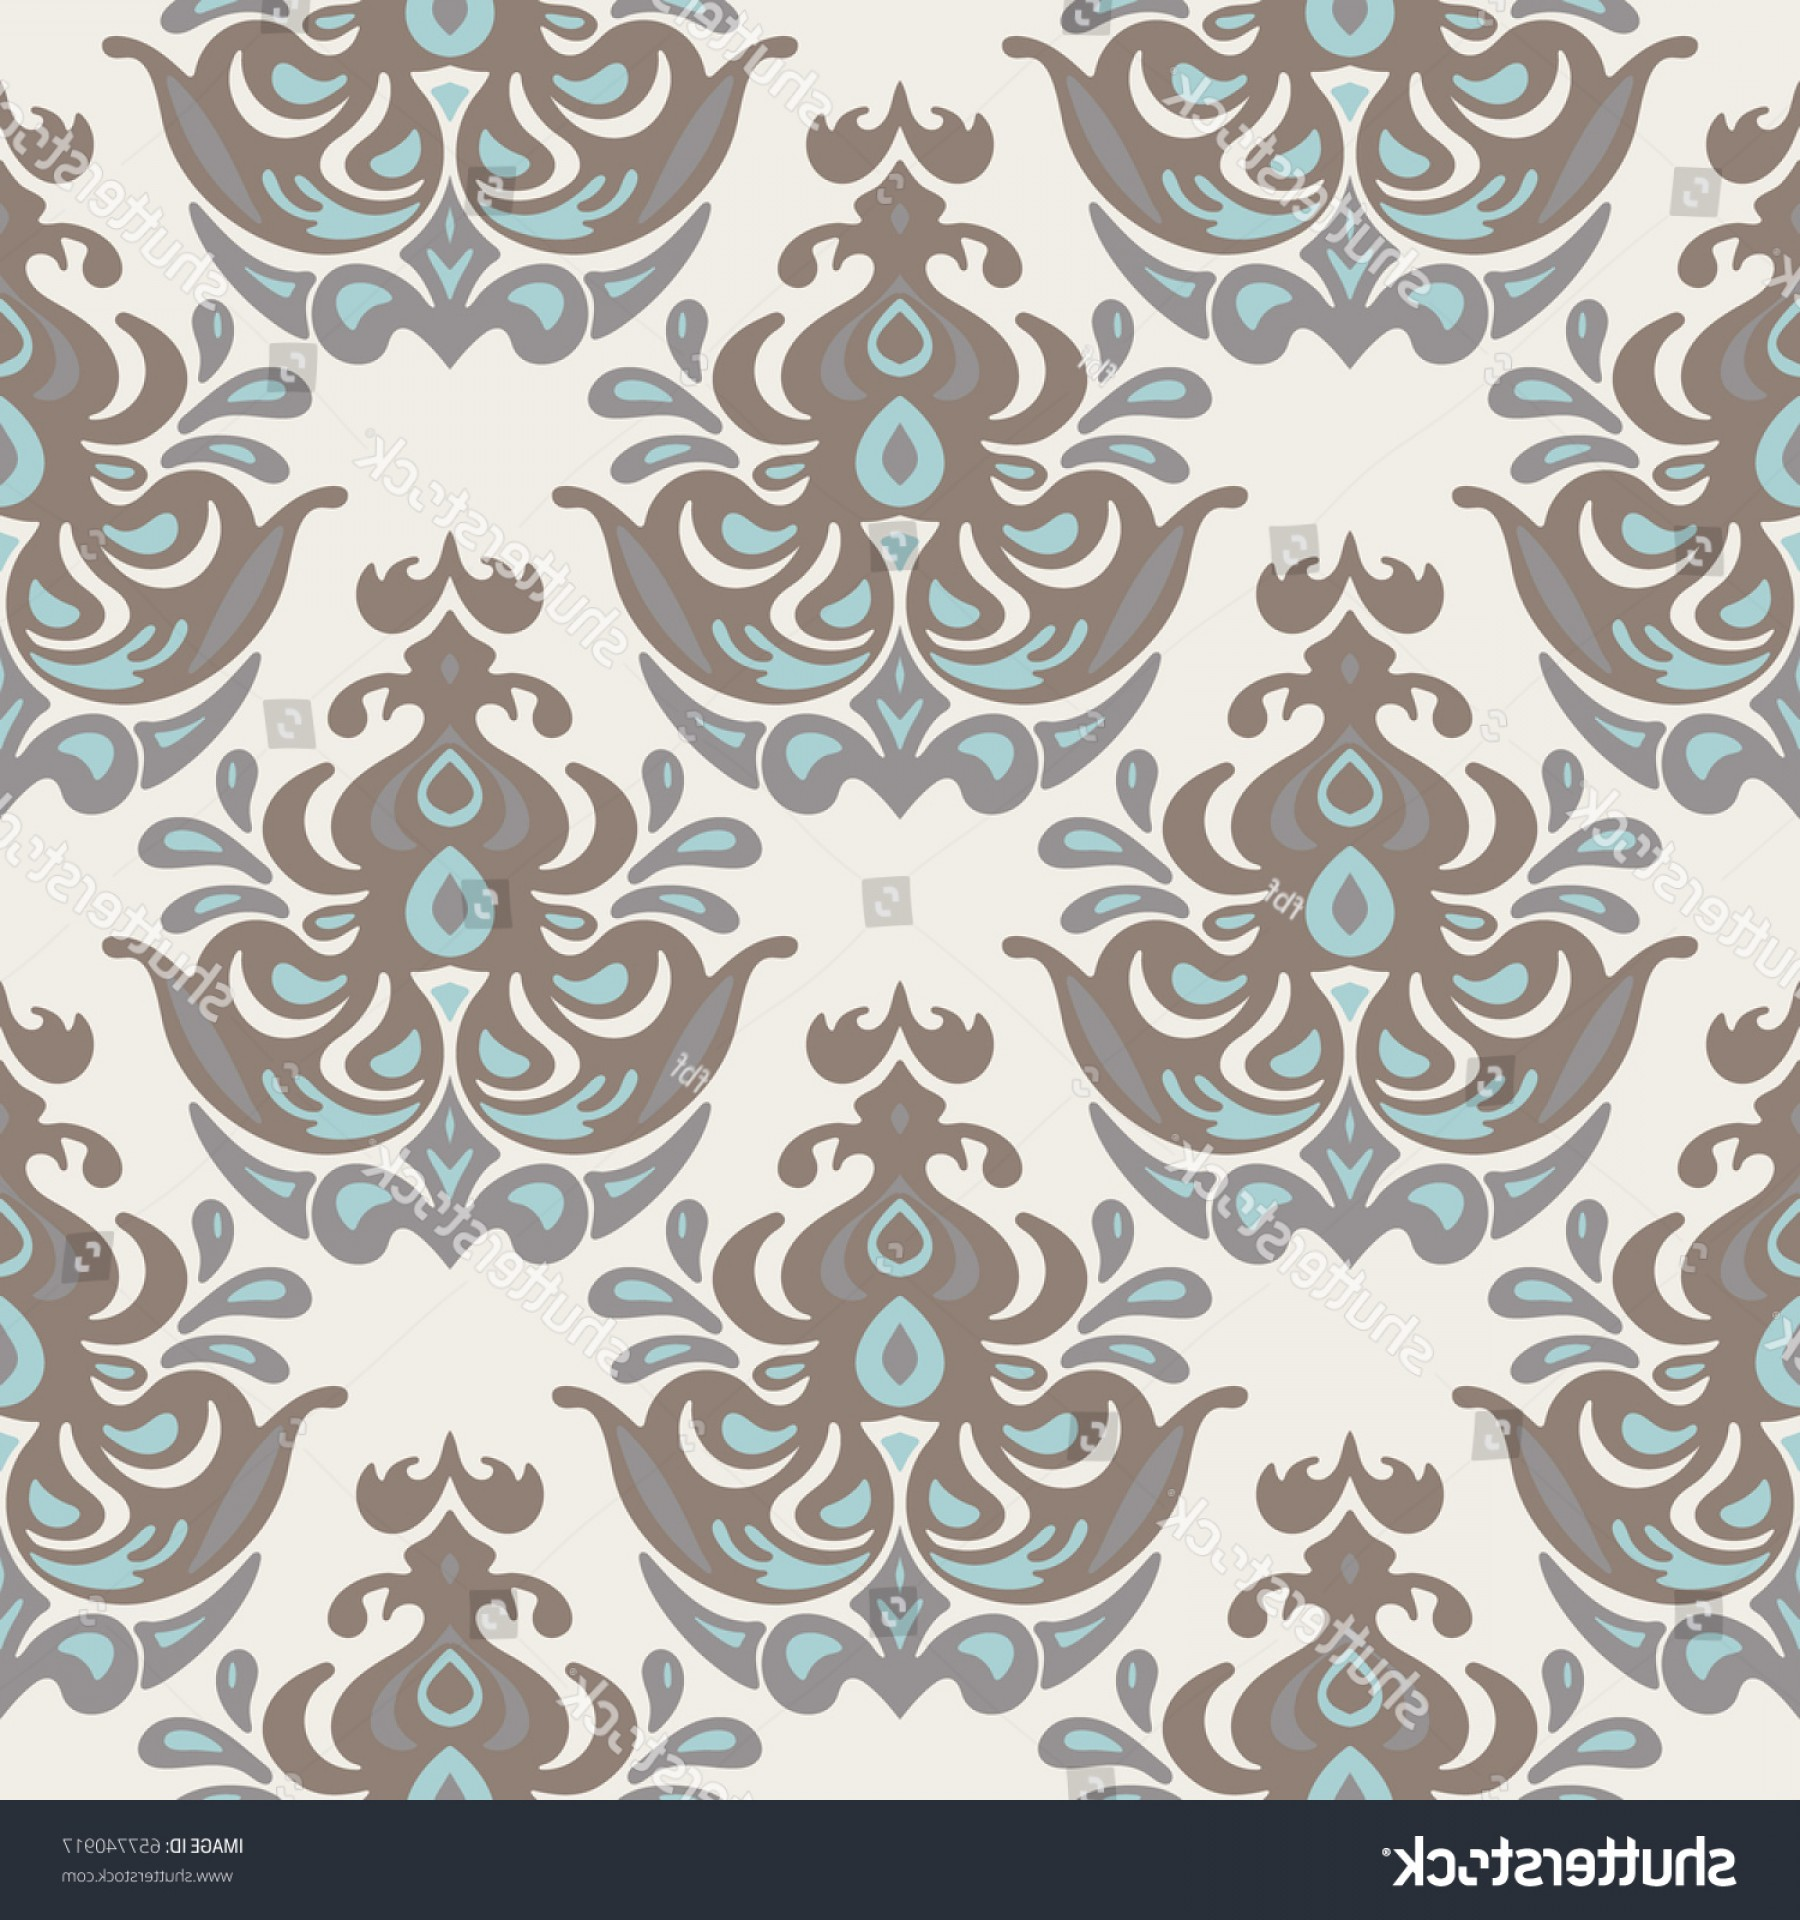 Aqua Victorian Medallions Vectors: Vintage Damask Seamless Pattern Victorian Style